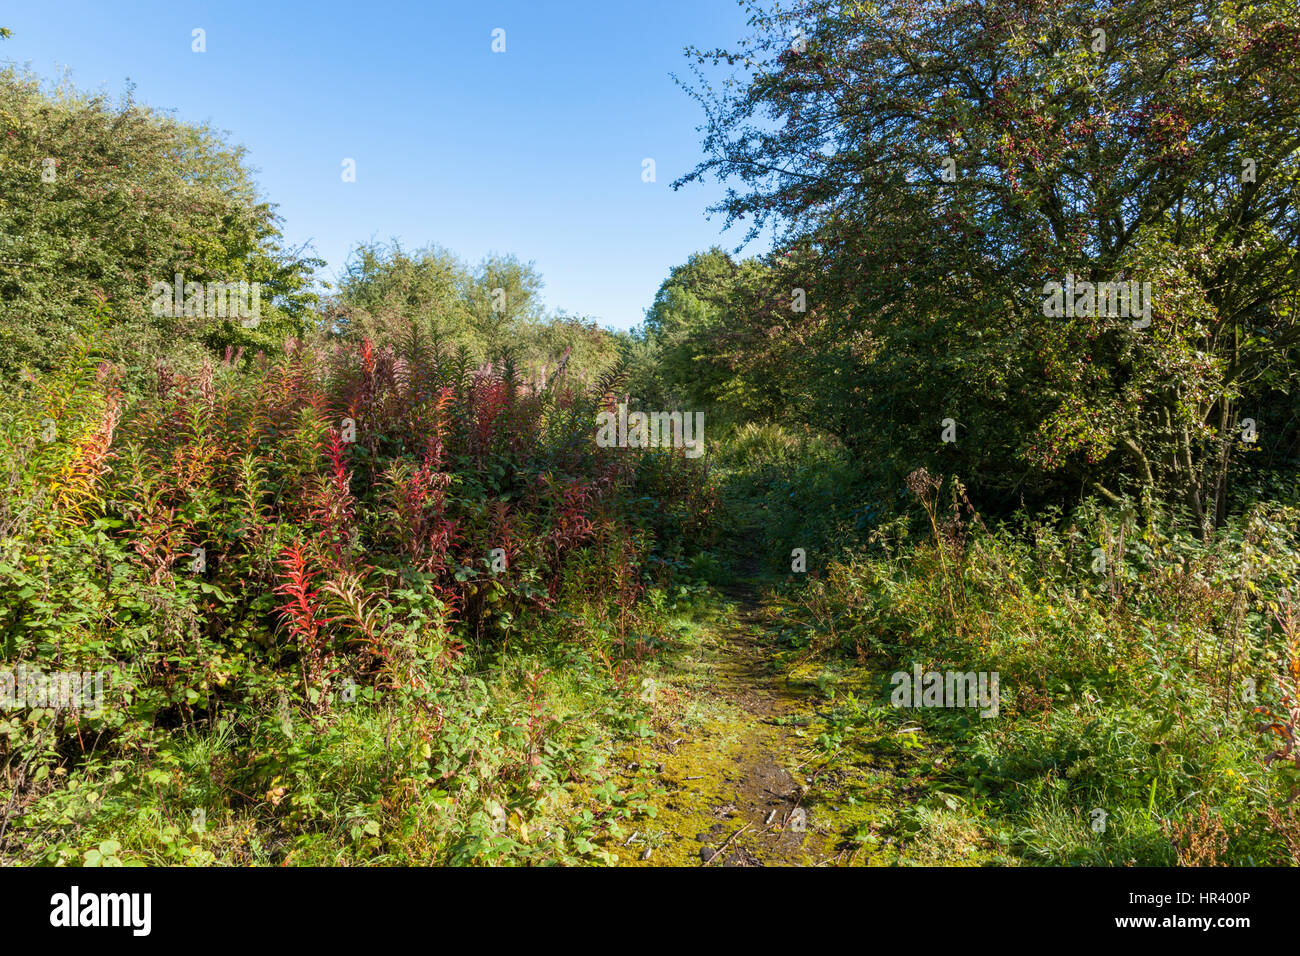 Overgrown path through bushes and trees on wasteland, Nottinghamshire, England, UK - Stock Image